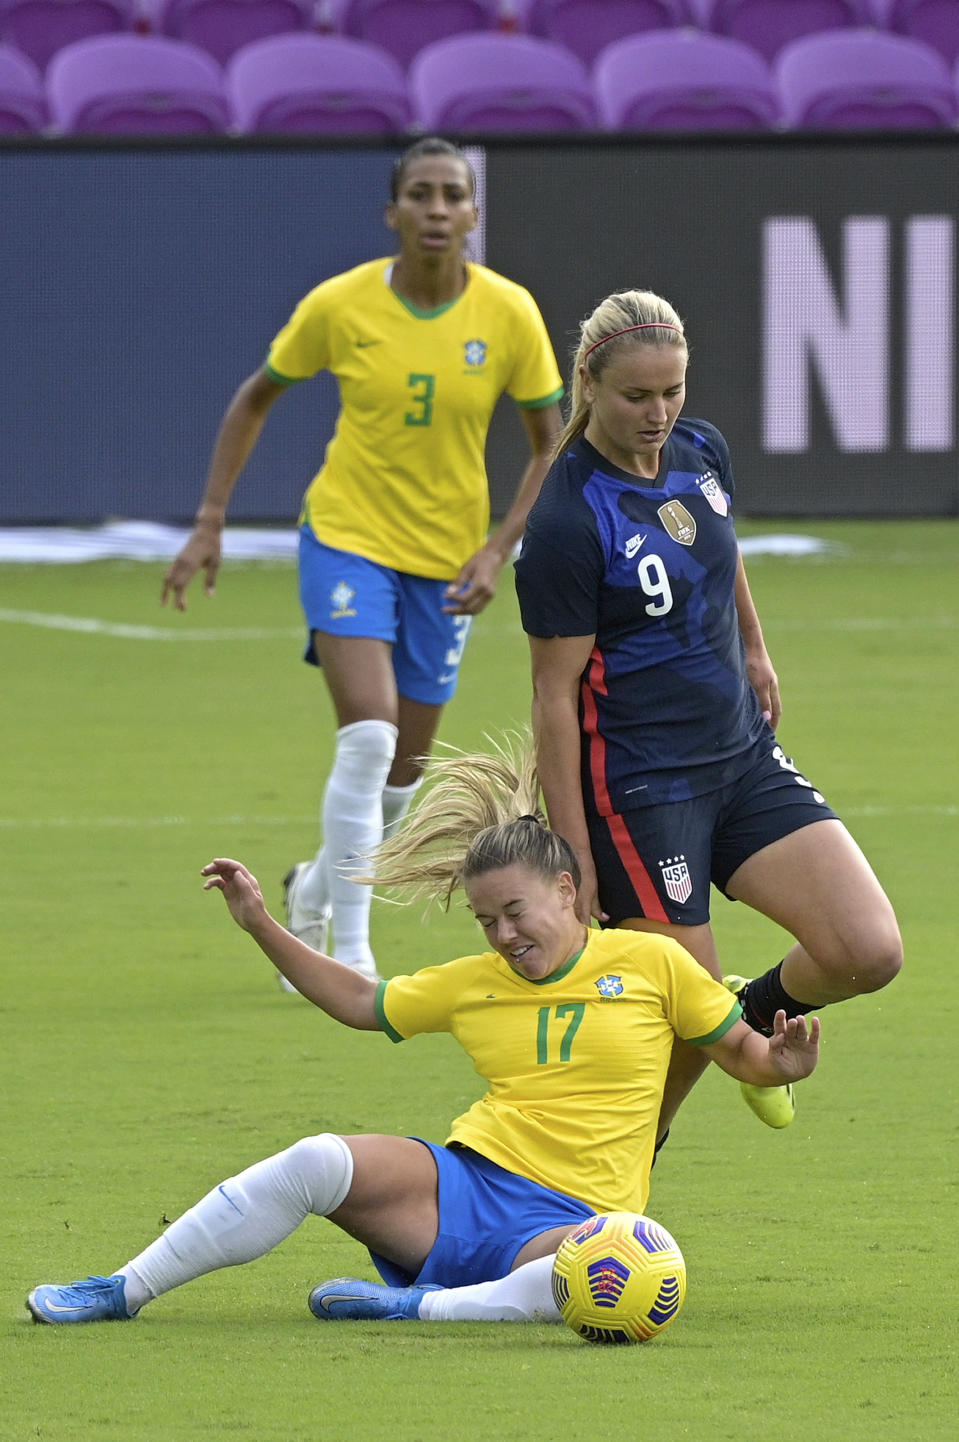 Brazil midfielder Andressinha (17) and United States midfielder Lindsey Horan (9) collide while competing for a ball during the first half of a SheBelieves Cup women's soccer match, Sunday, Feb. 21, 2021, in Orlando, Fla. (AP Photo/Phelan M. Ebenhack)